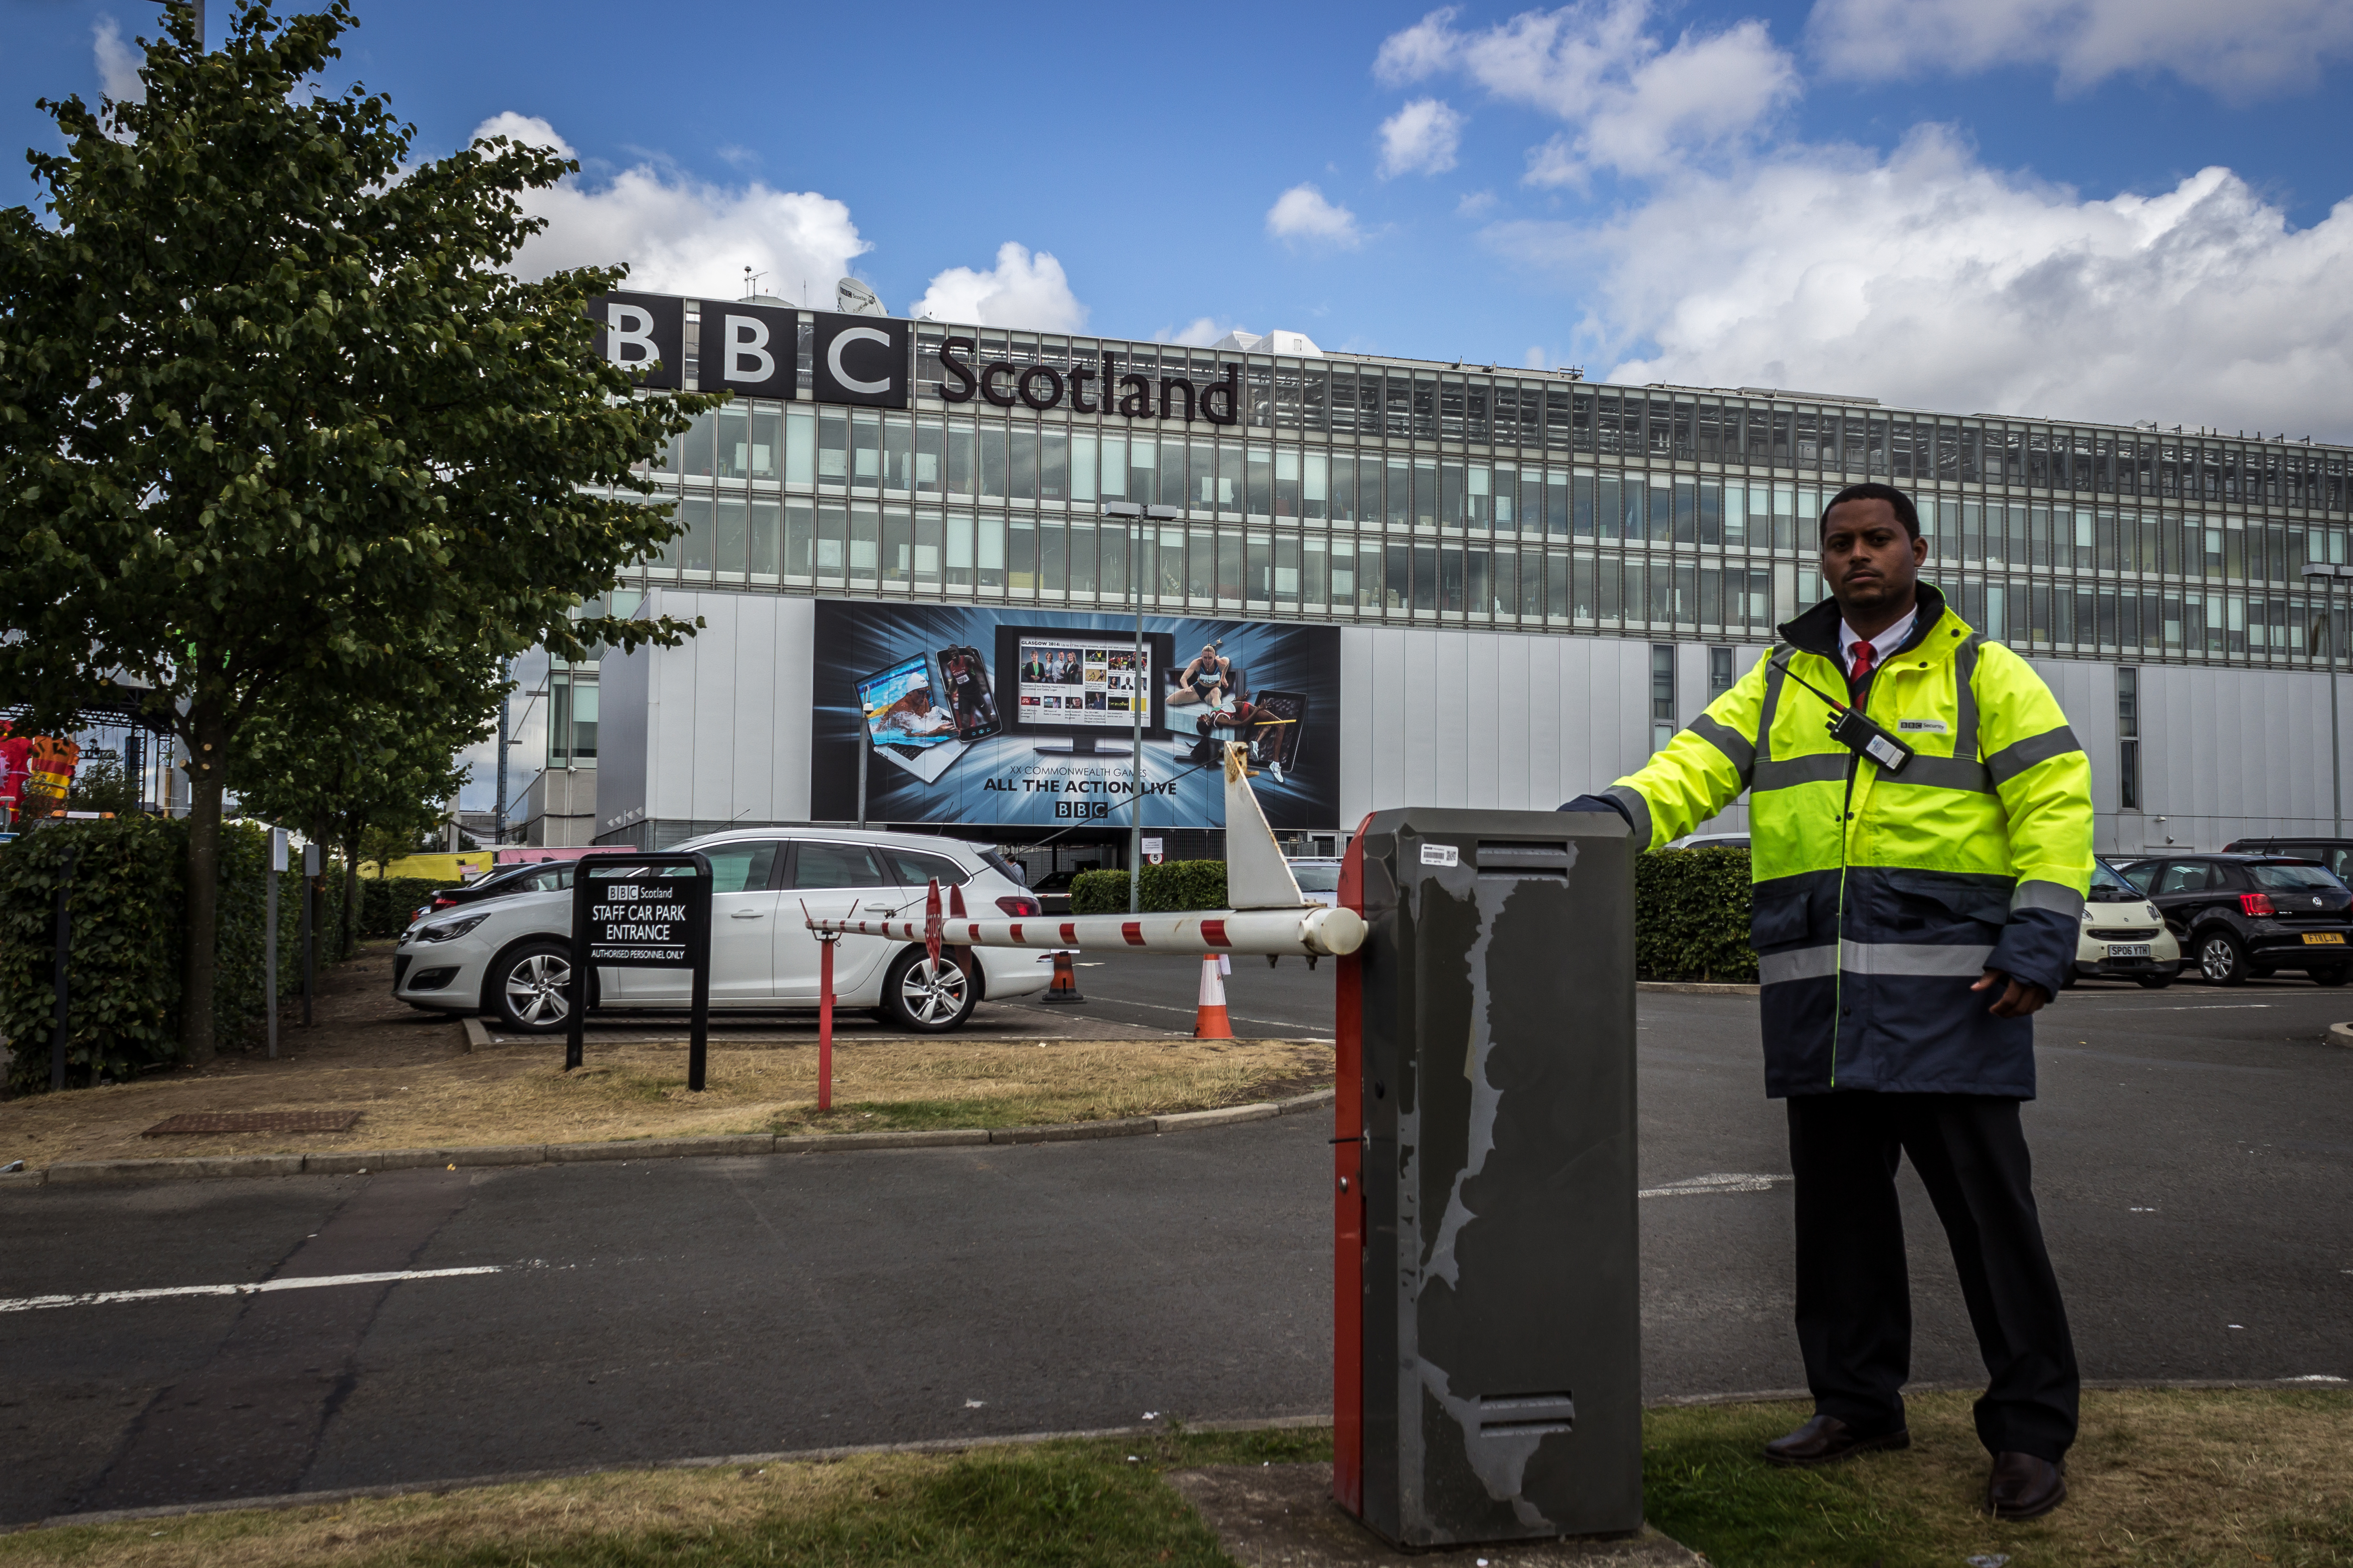 BBC Security